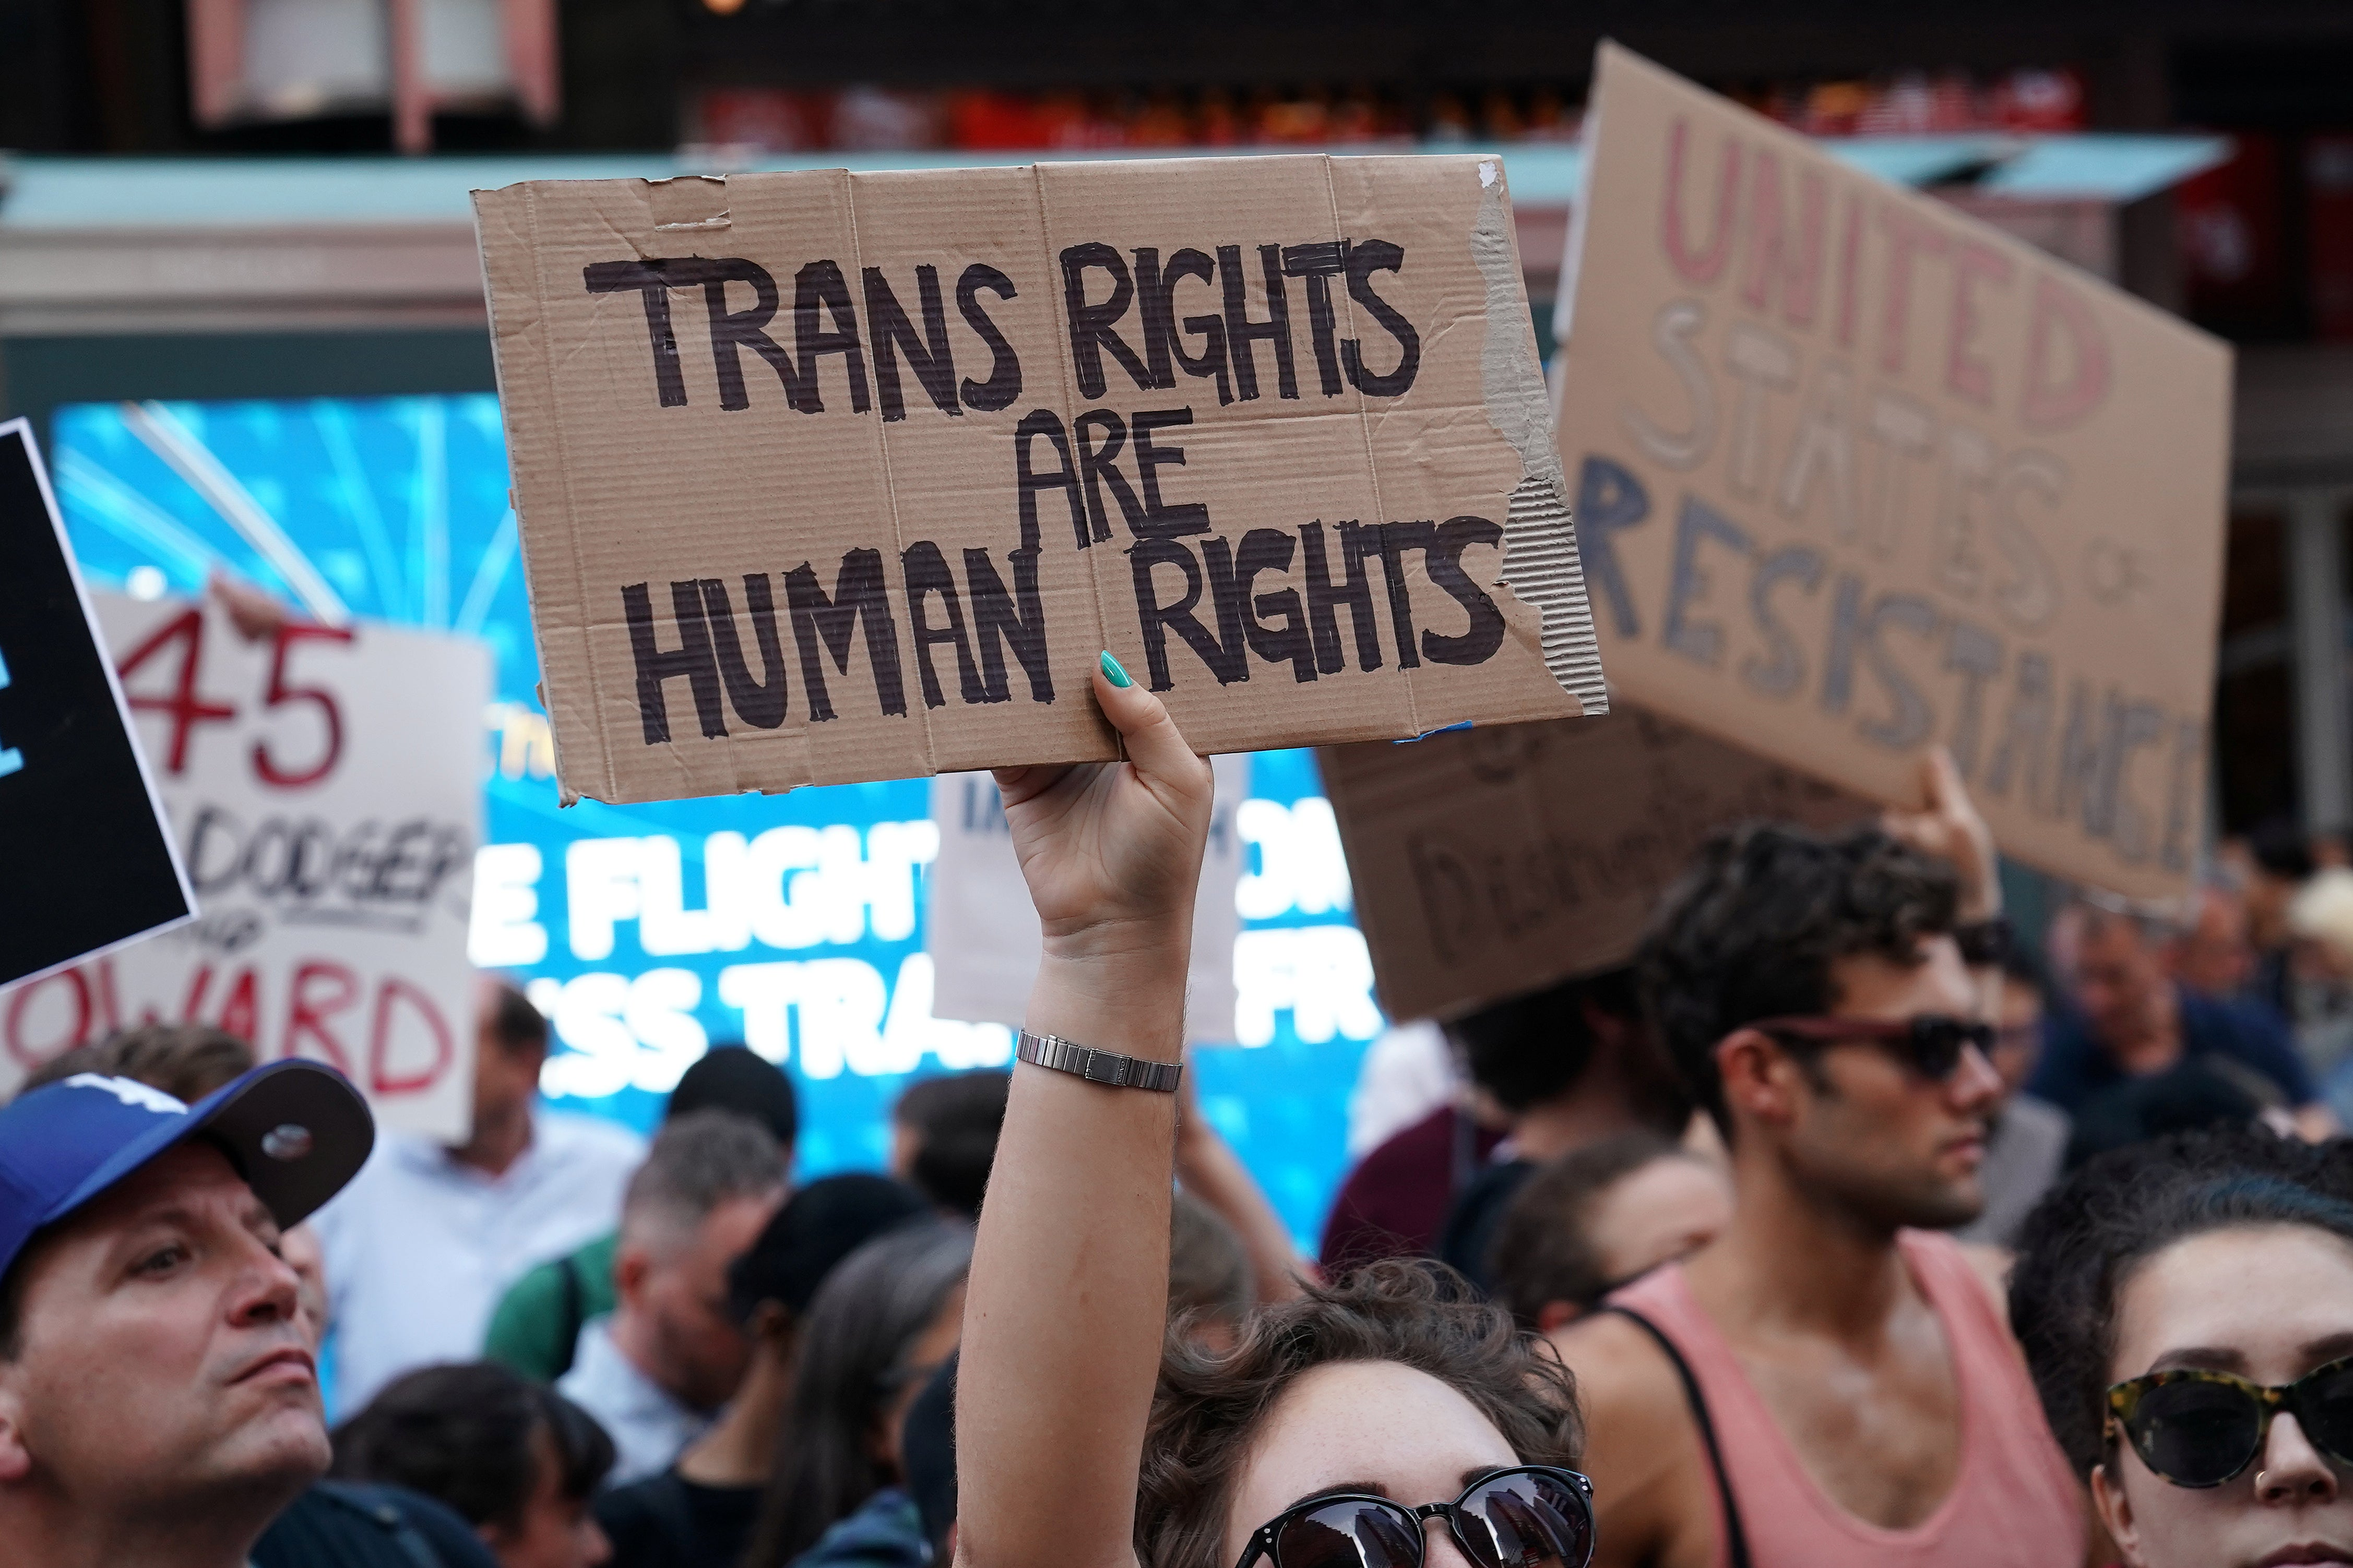 People protest President Donald Trump's announcement that he plans to reinstate a ban on transgender individuals from serving in any capacity in the U.S. military, in Times Square, New York on July 26, 2017.